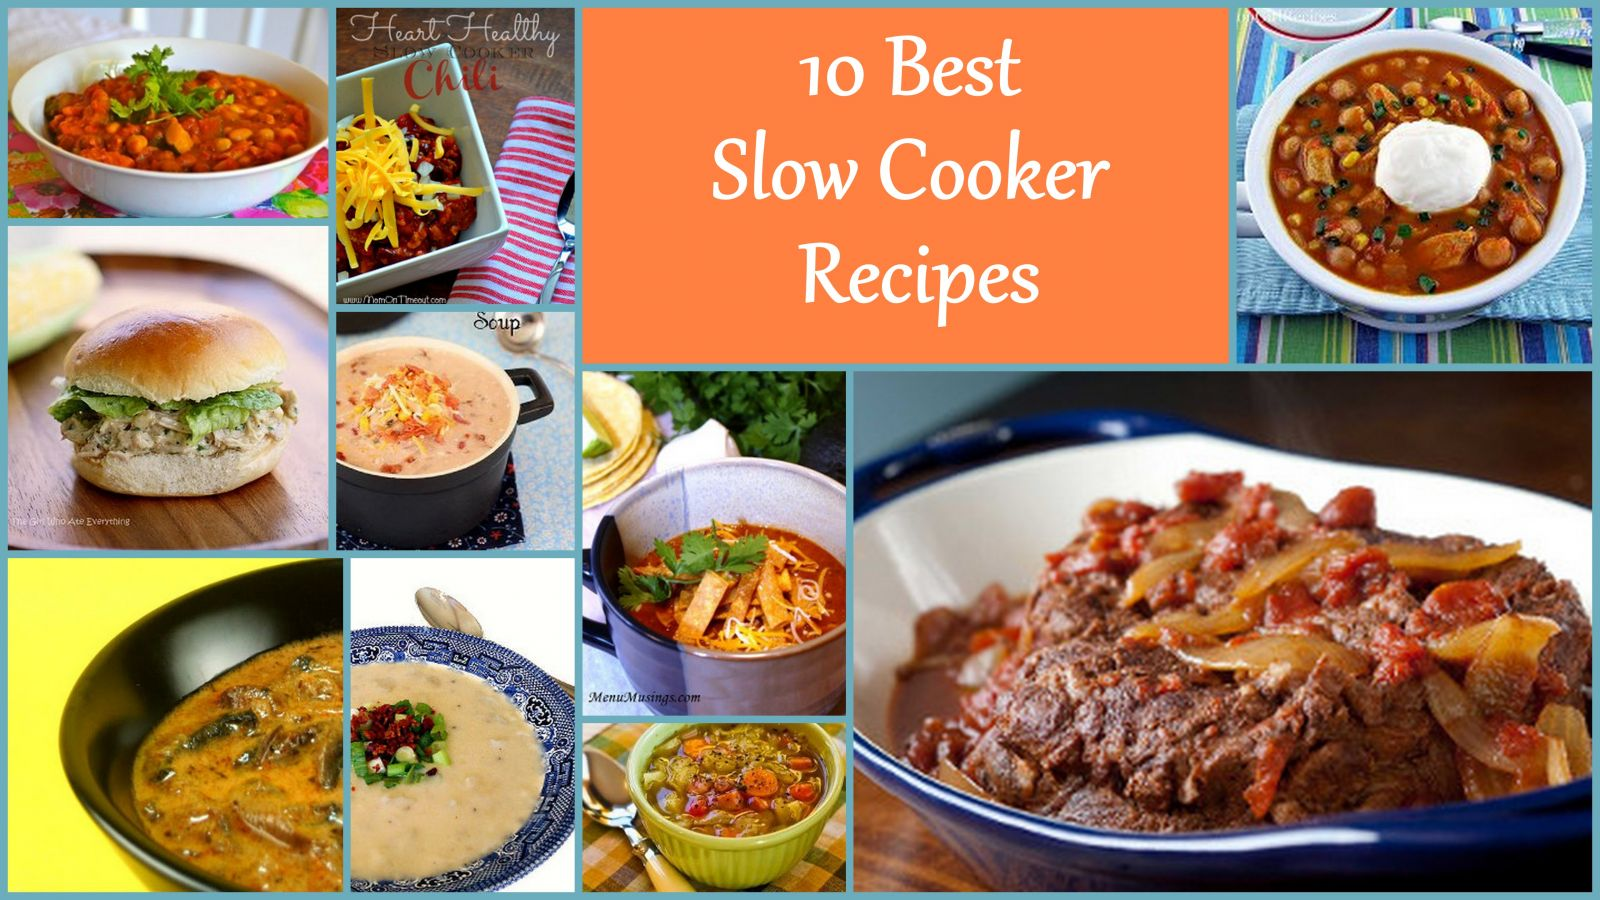 If you're looking for easy comfort foods, try our slow-cooker recipes! Ranging from loaded baked potatoes to beef stew, they make it a cinch to pull together a satisfying all-in-one meal.